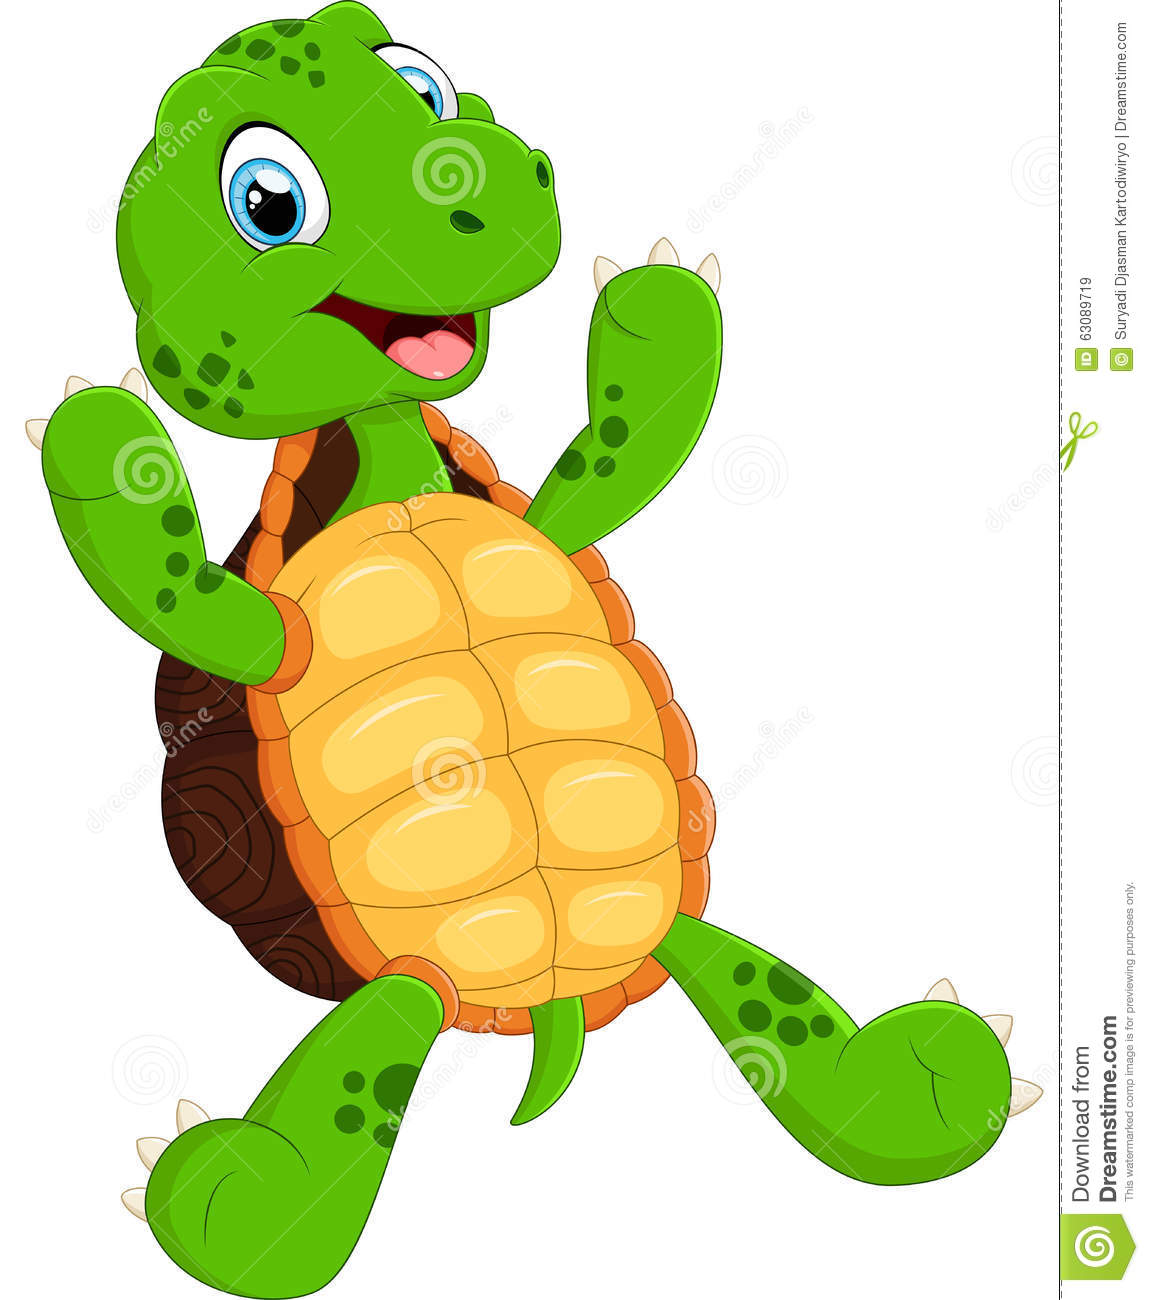 Download Tortue De Ondulation Verte Mignonne Illustration de Vecteur - Illustration du comique, regarder: 63089719